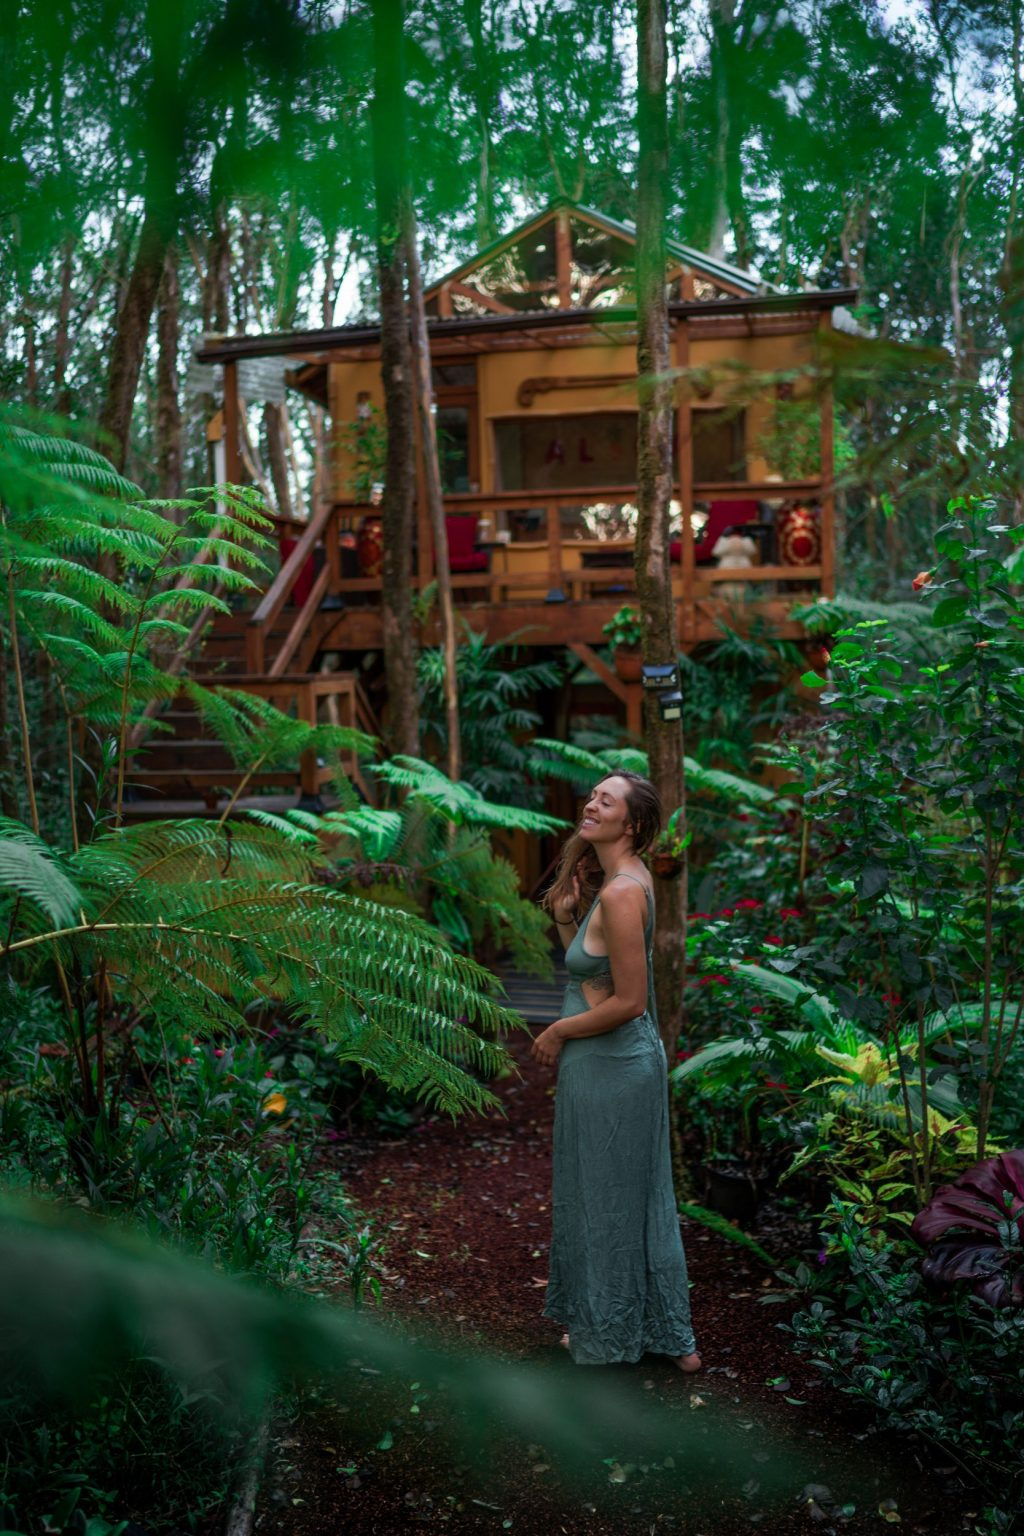 The 10 Best Airbnbs in Hawaii